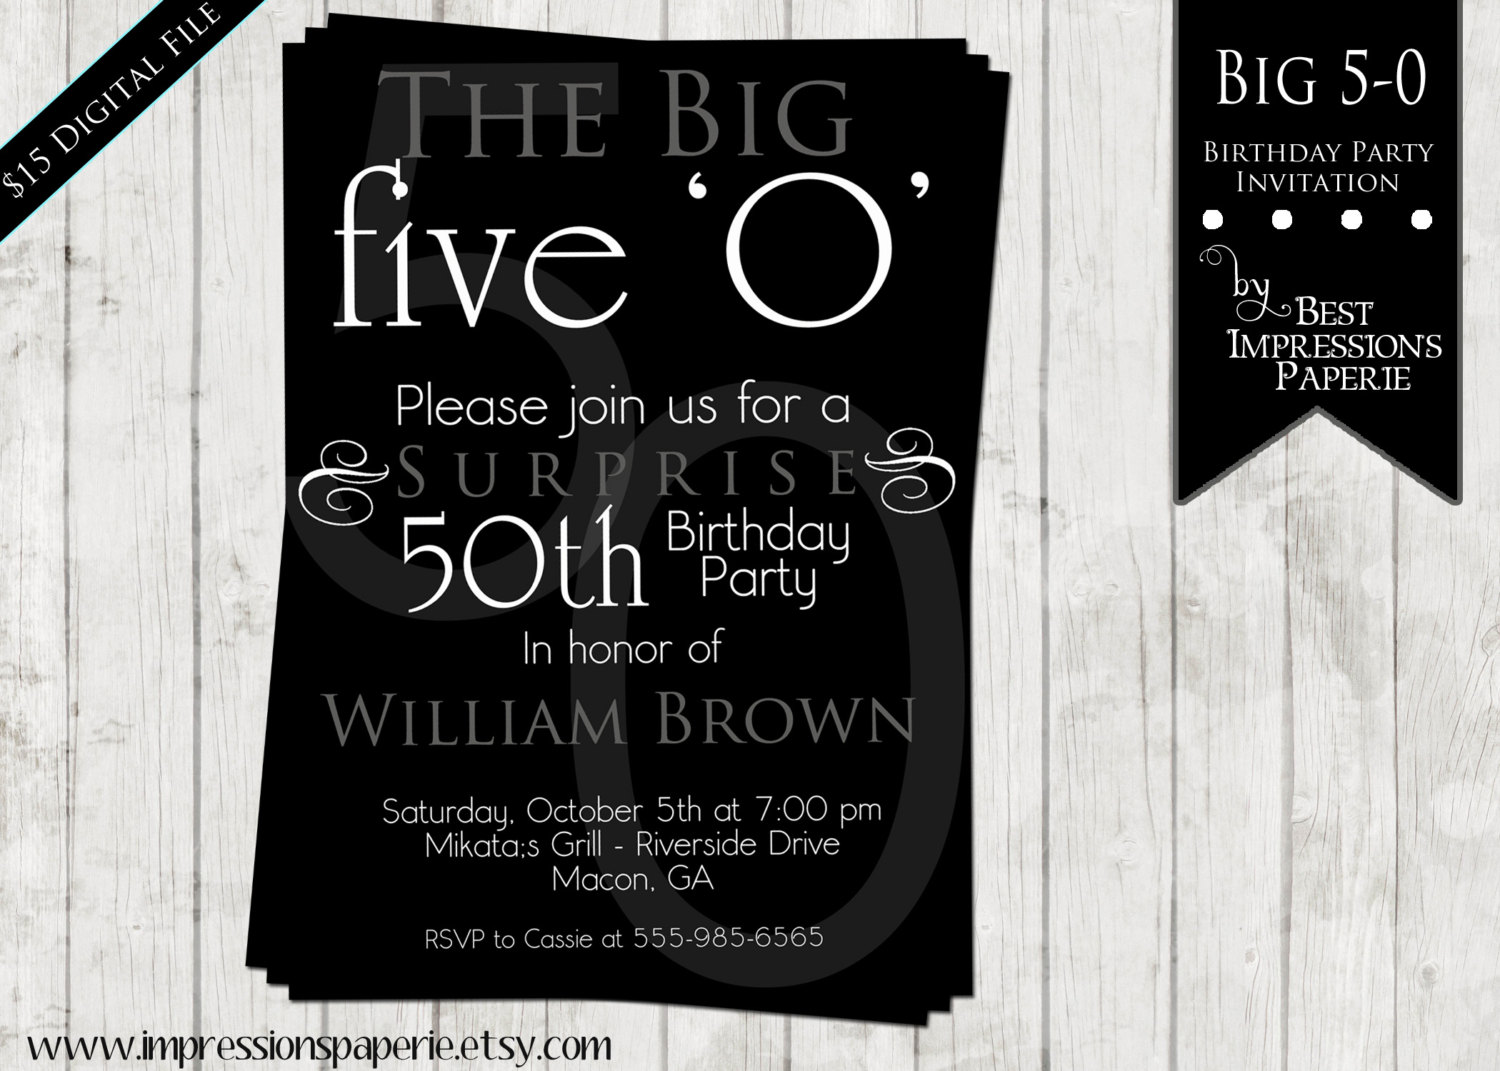 50th birthday invitation wording samples dolanpedia invitations 50th birthday party invitation wording filmwisefo